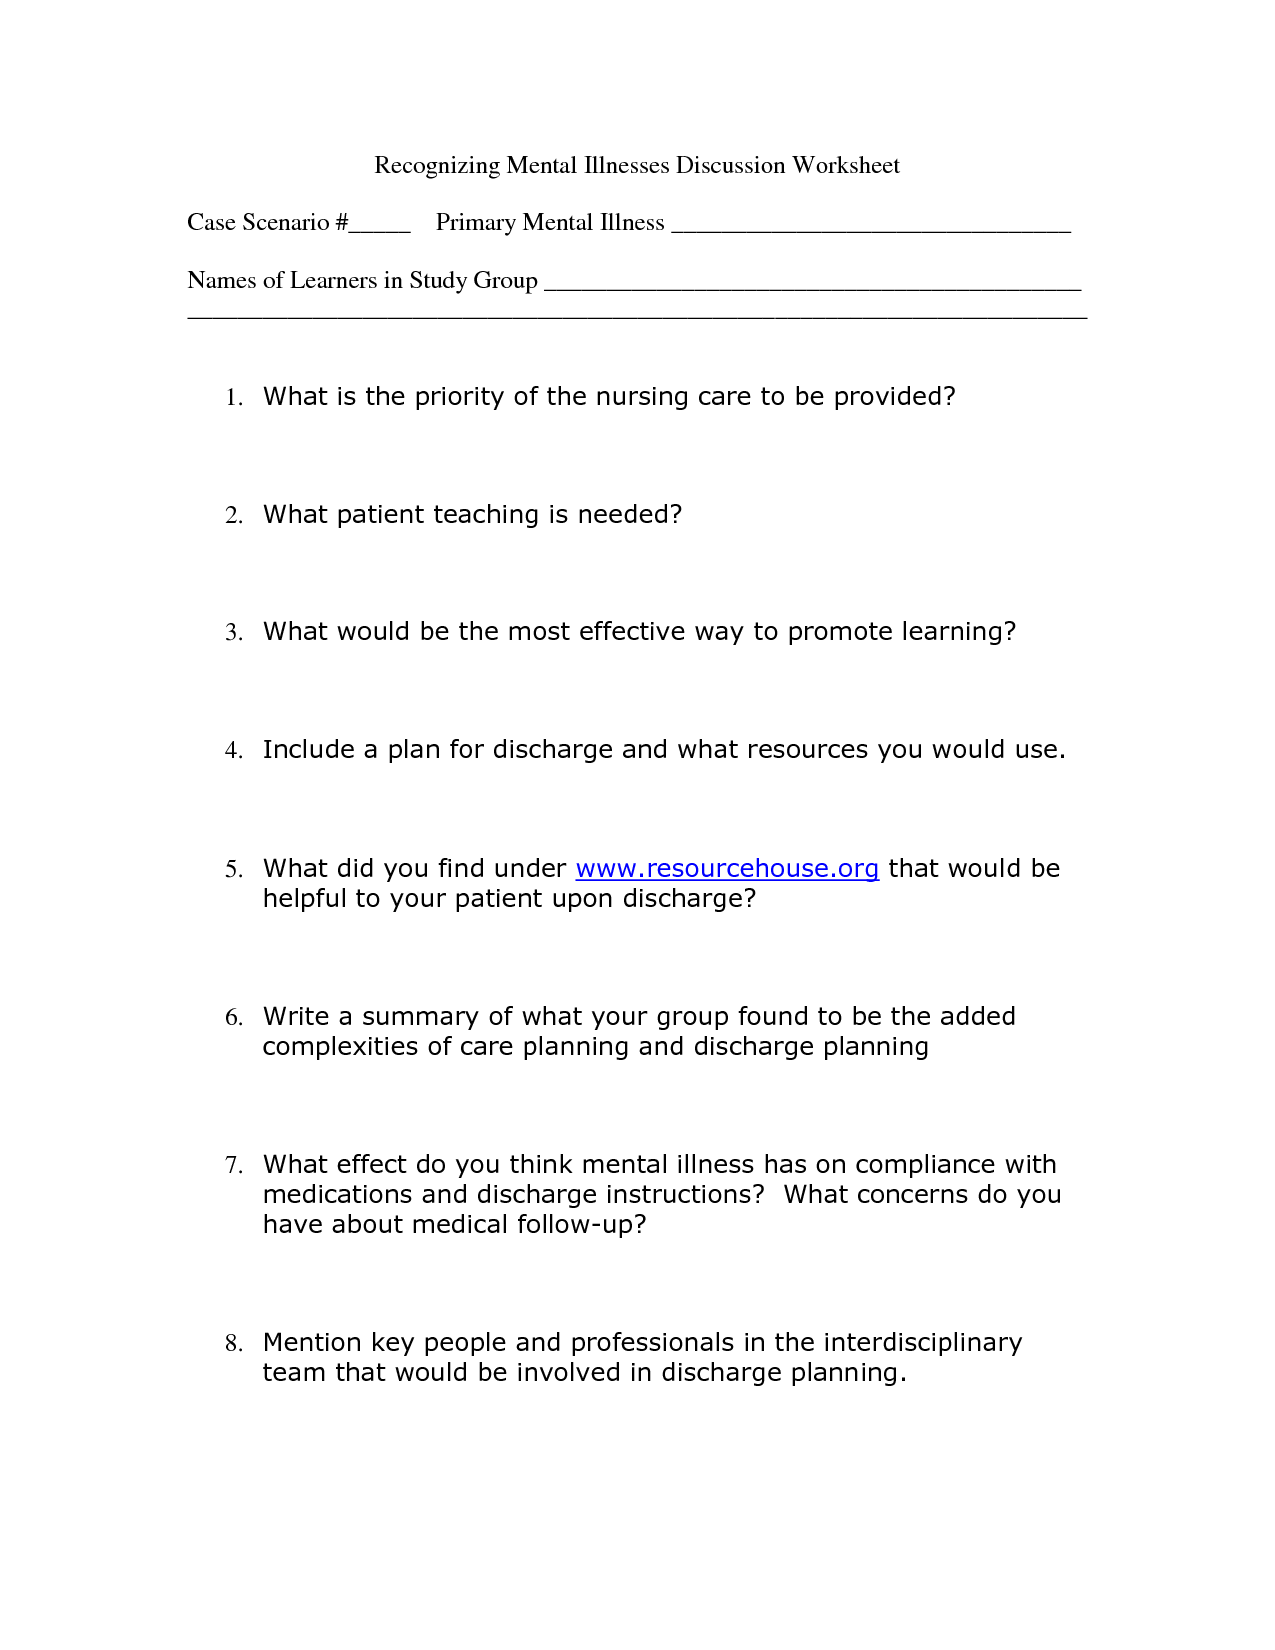 Free Worksheet 7th Grade Health Worksheets fun worksheets for health 11 dental activities puzzle printable mental group activities